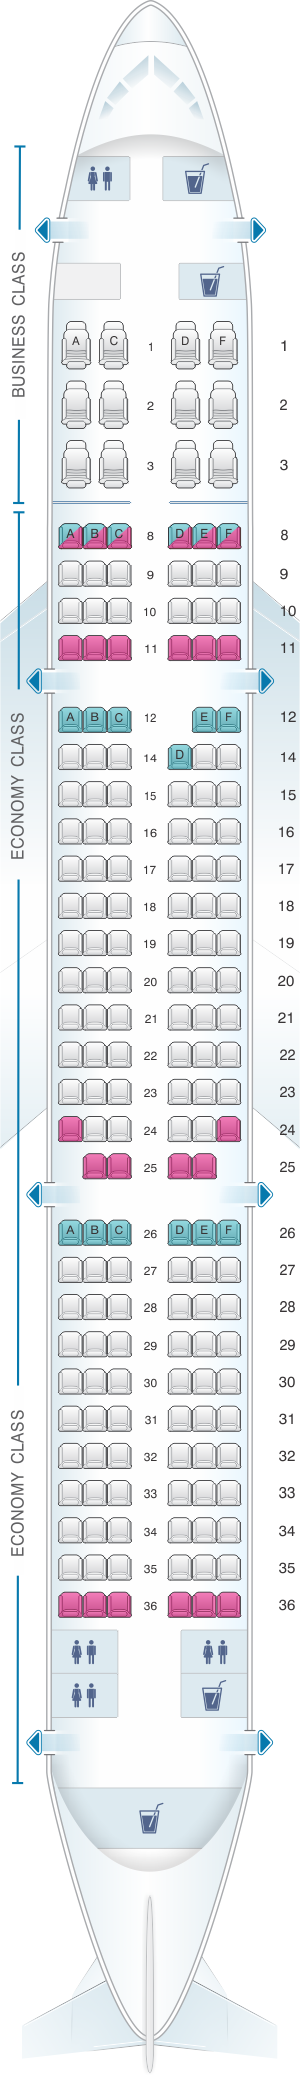 Seat map for Qatar Airways Airbus A321 200 177pax